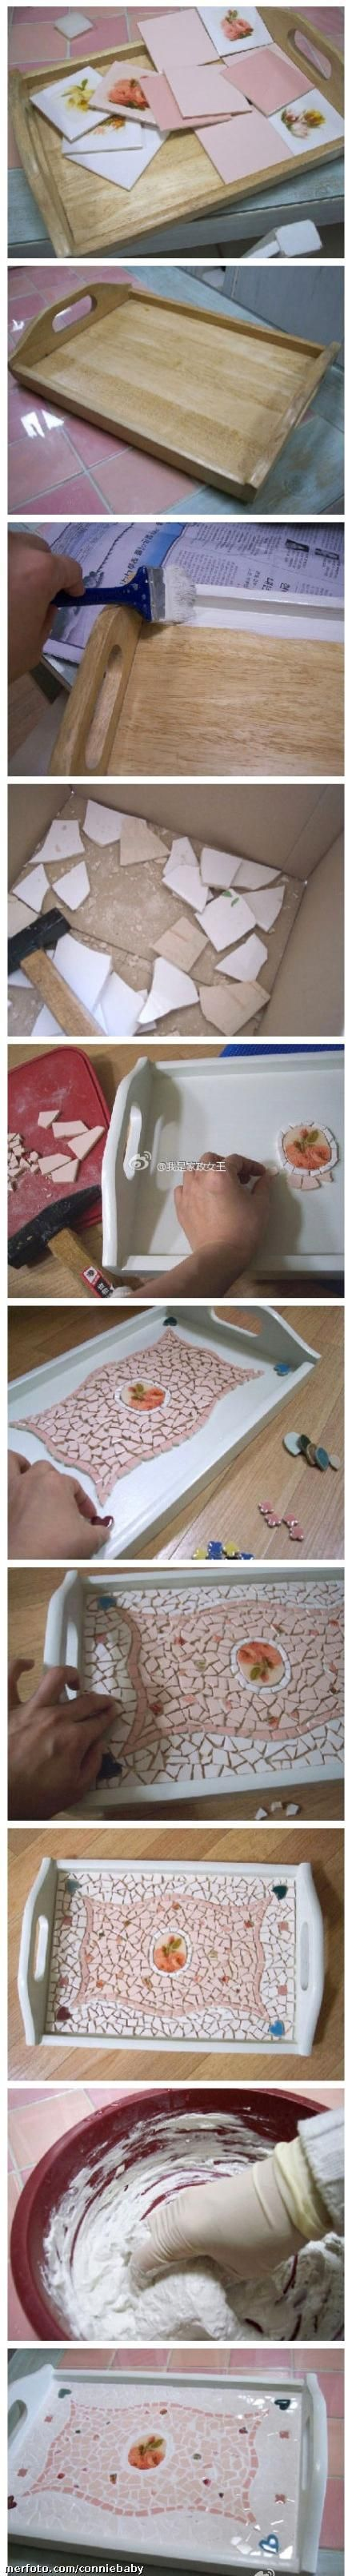 17 Best Images About Arts Crafts Mosaic On Pinterest